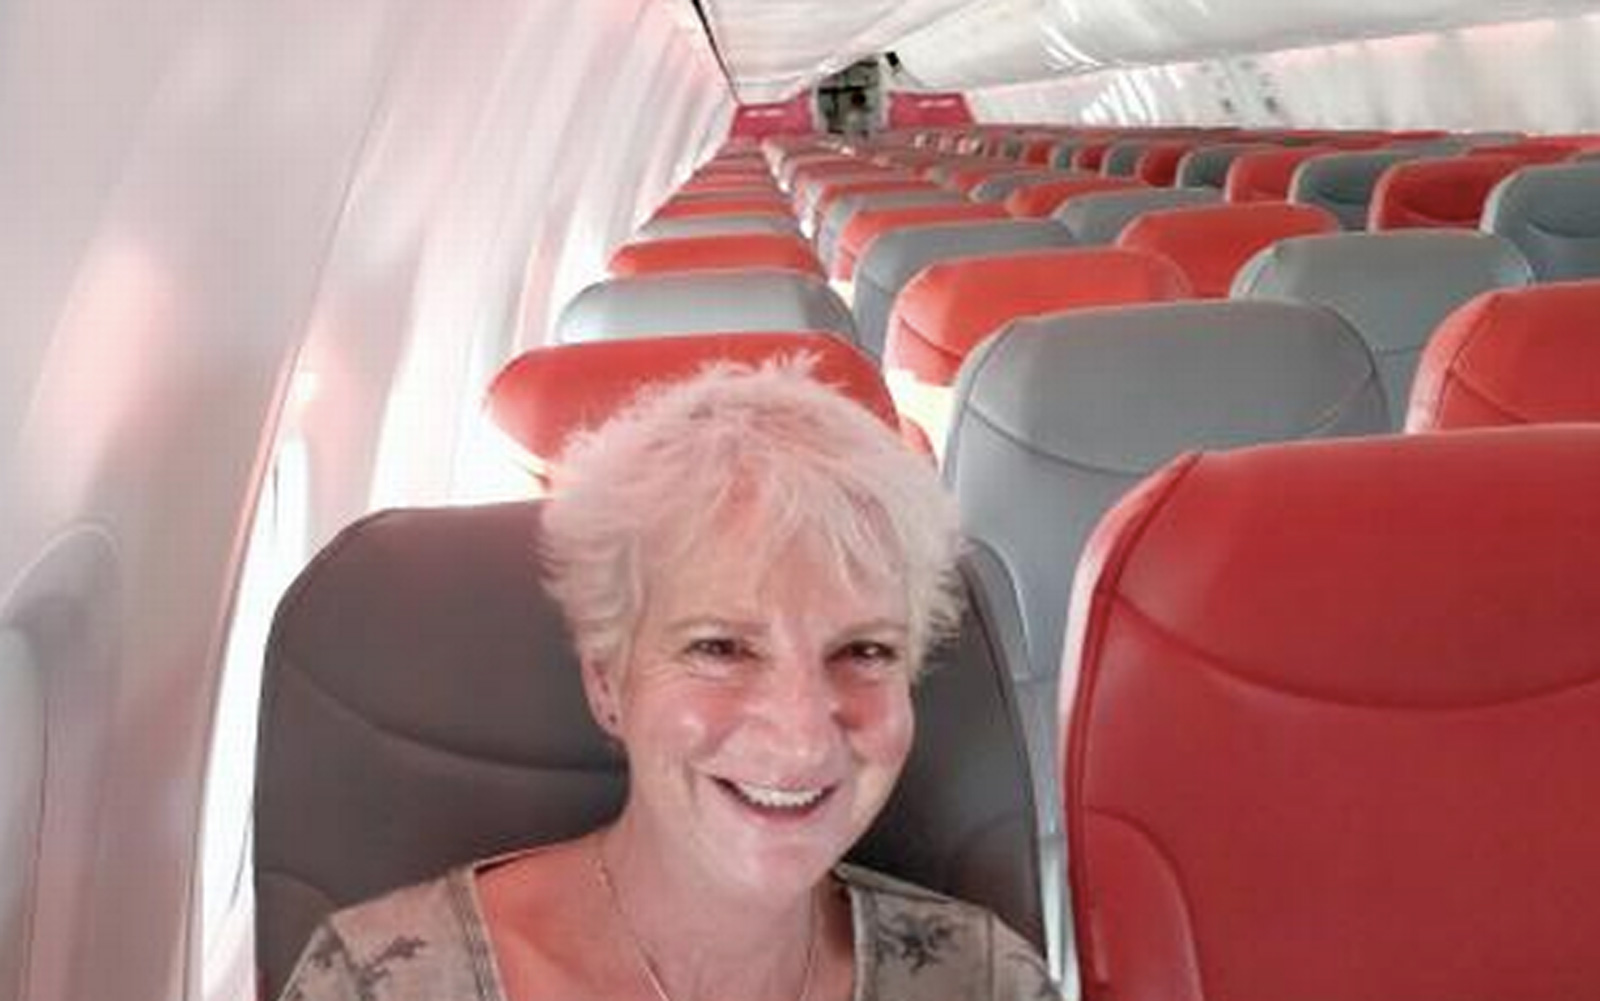 Solo Airline Passenger Given VIP Treatment On The Way To Crete